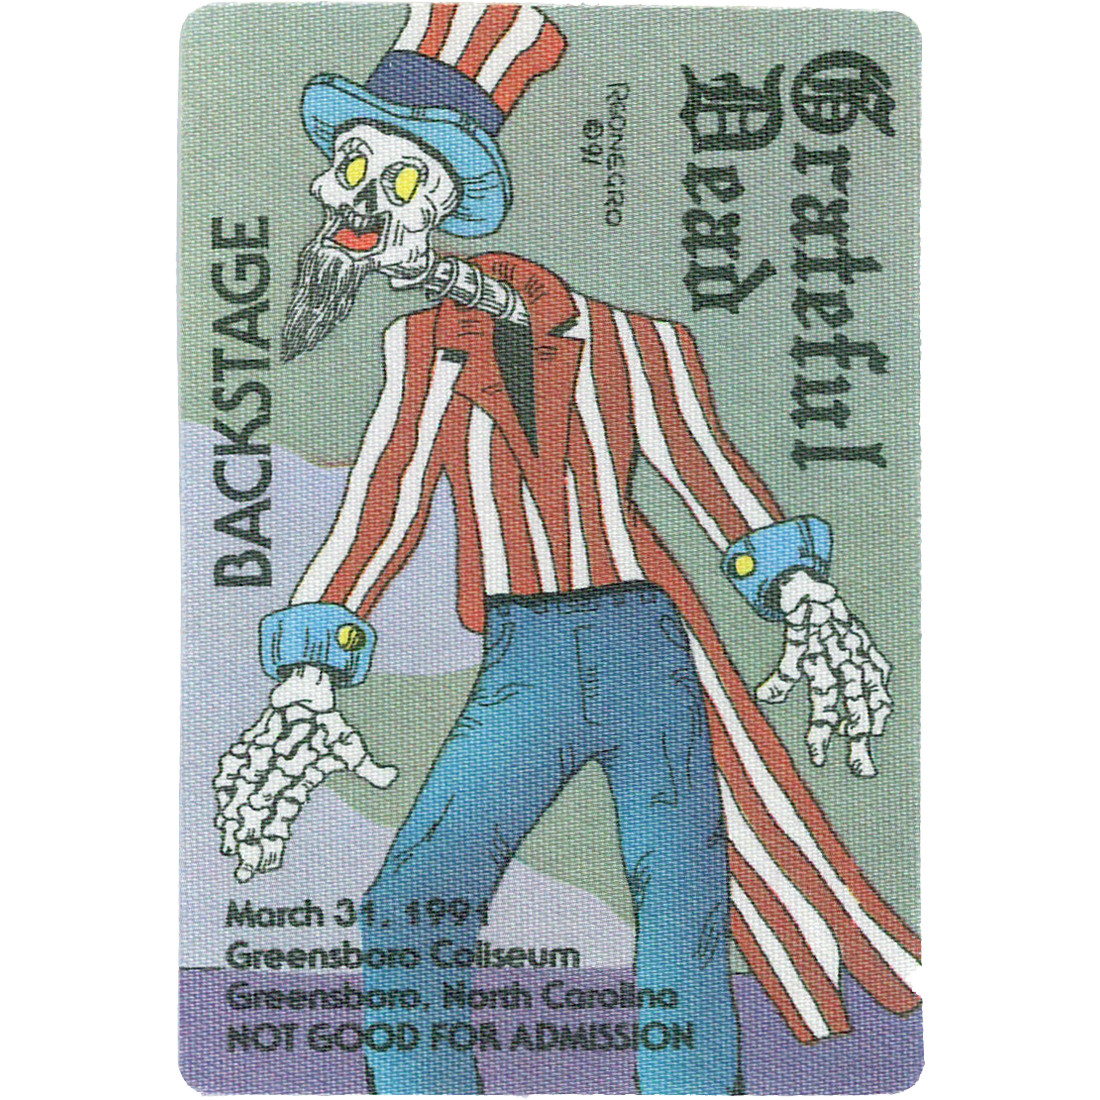 Grateful Dead 1991 03-31 Backstage Pass